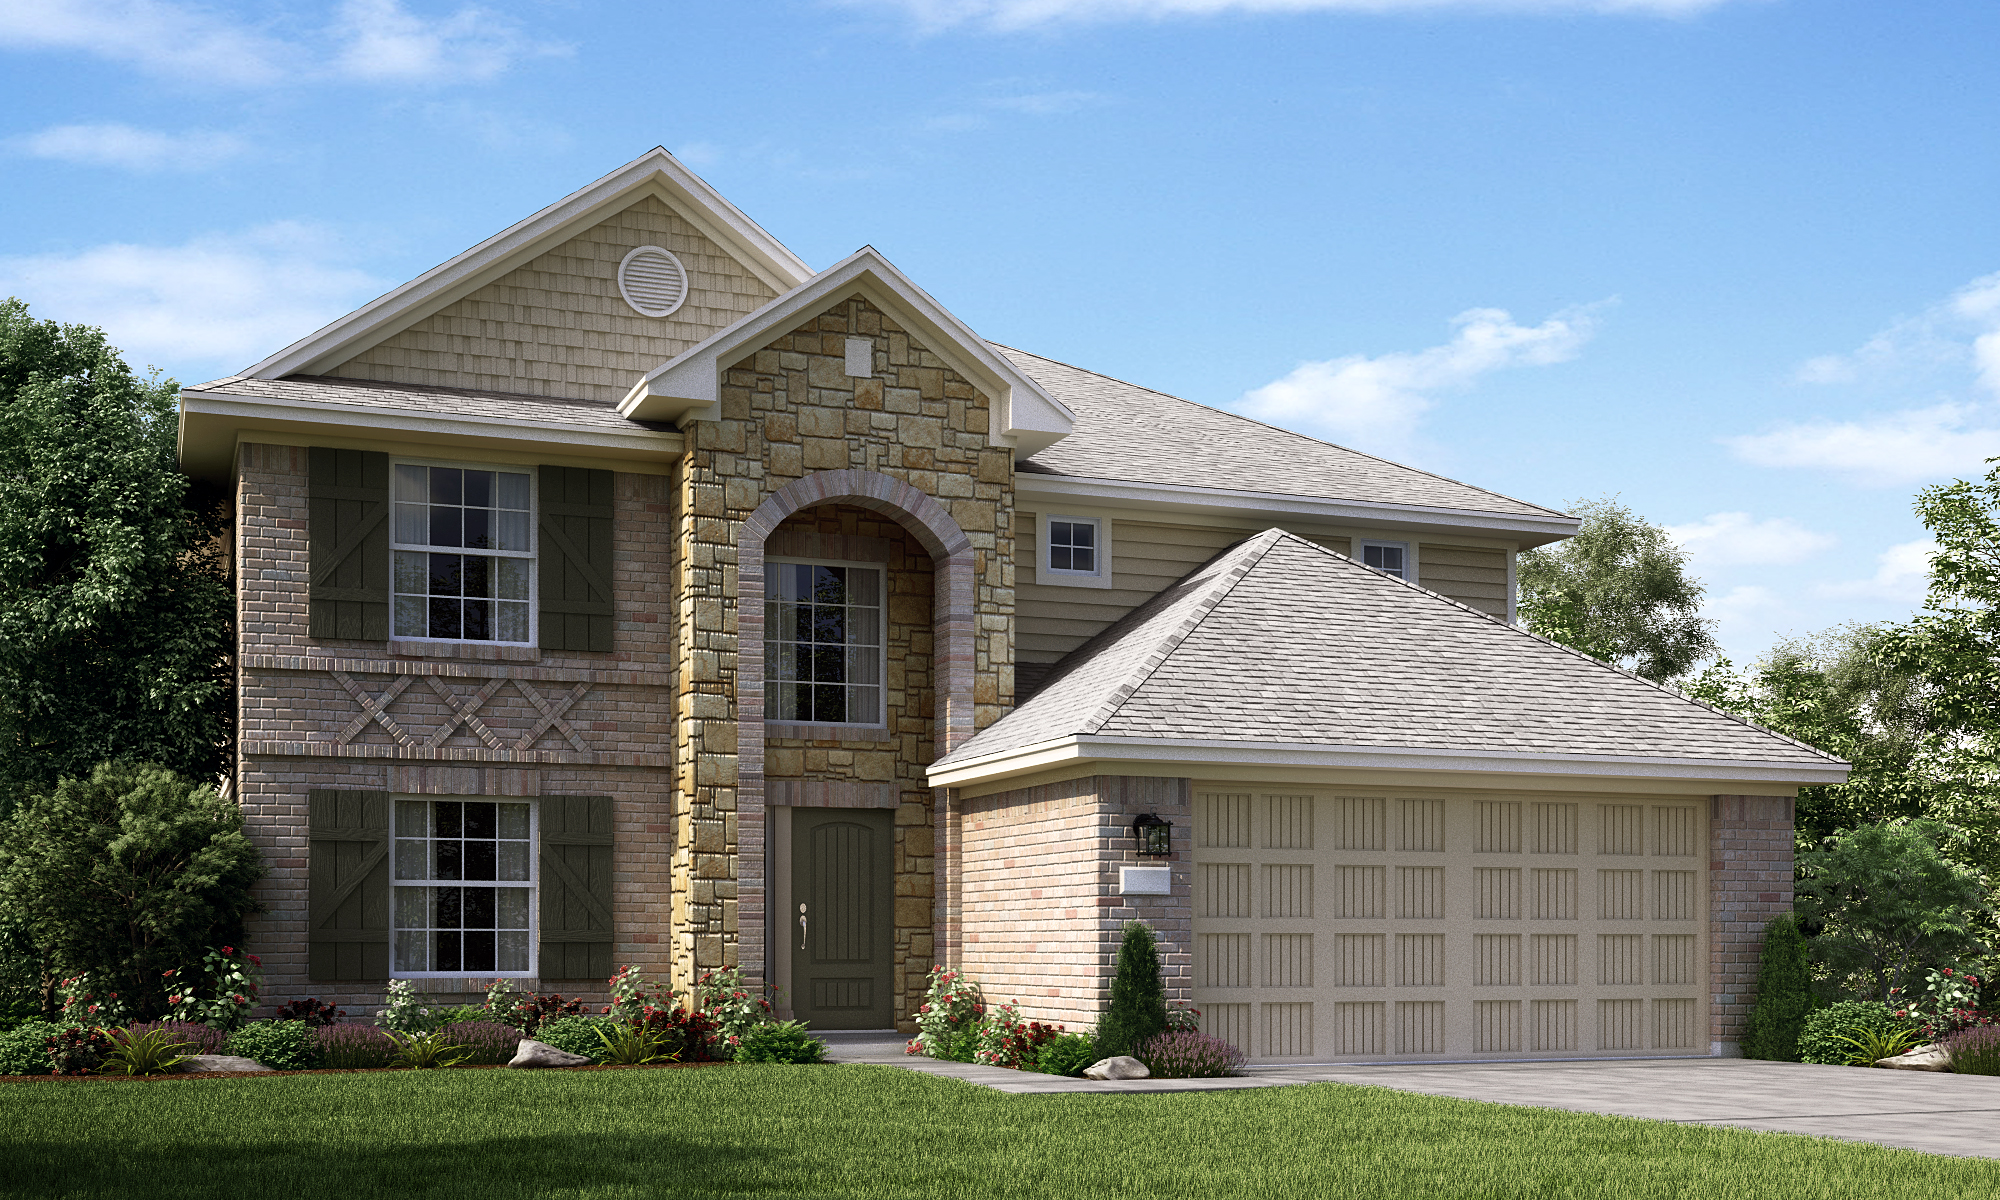 Lennar houston announces opening of new model home in for Modern model homes